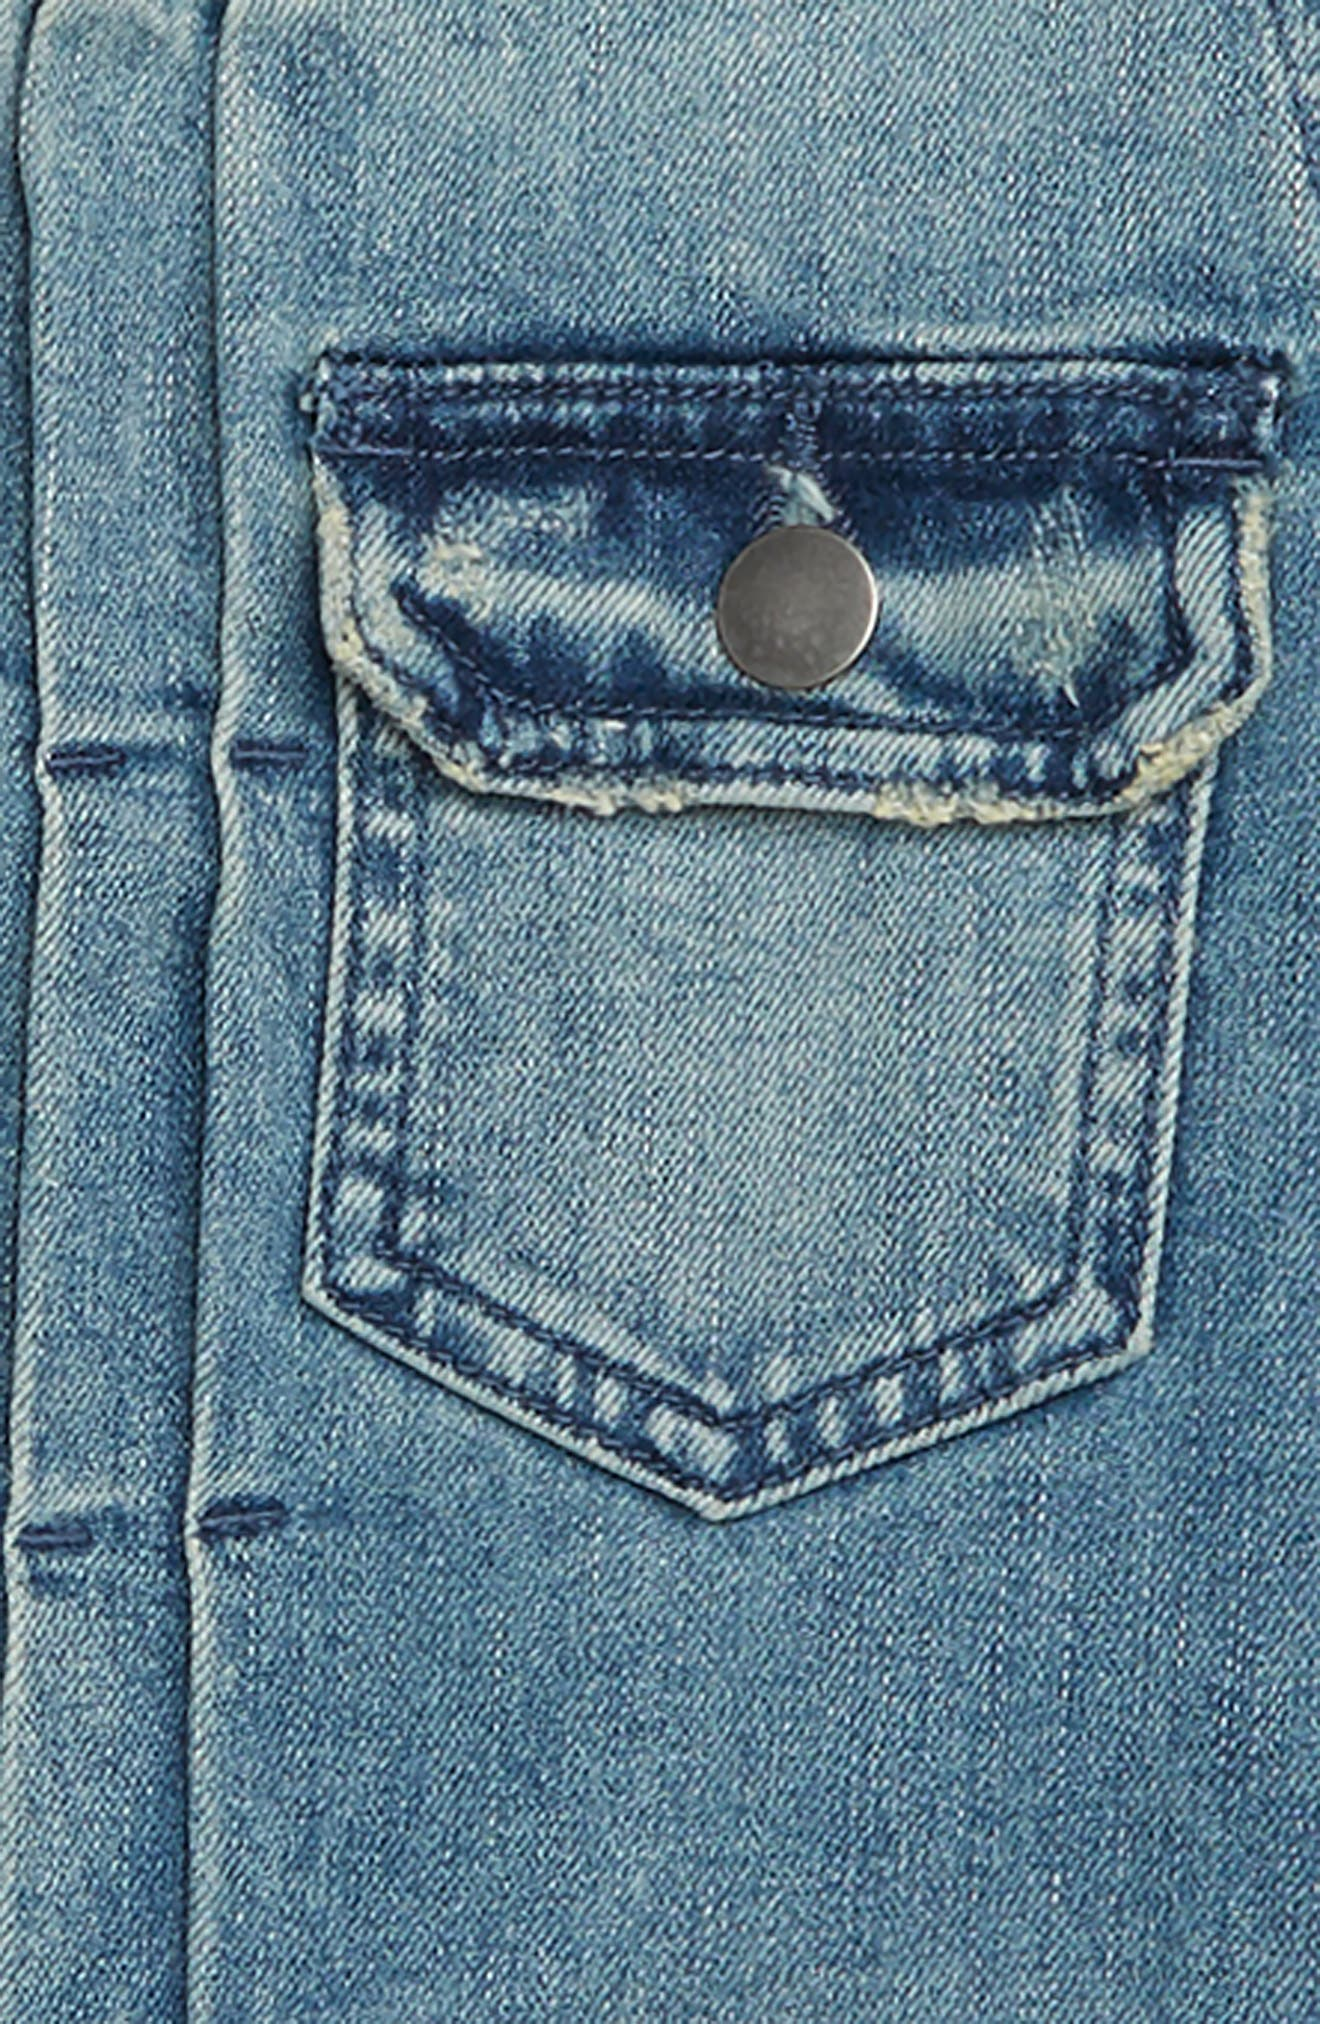 Denim Jacket,                             Alternate thumbnail 2, color,                             420